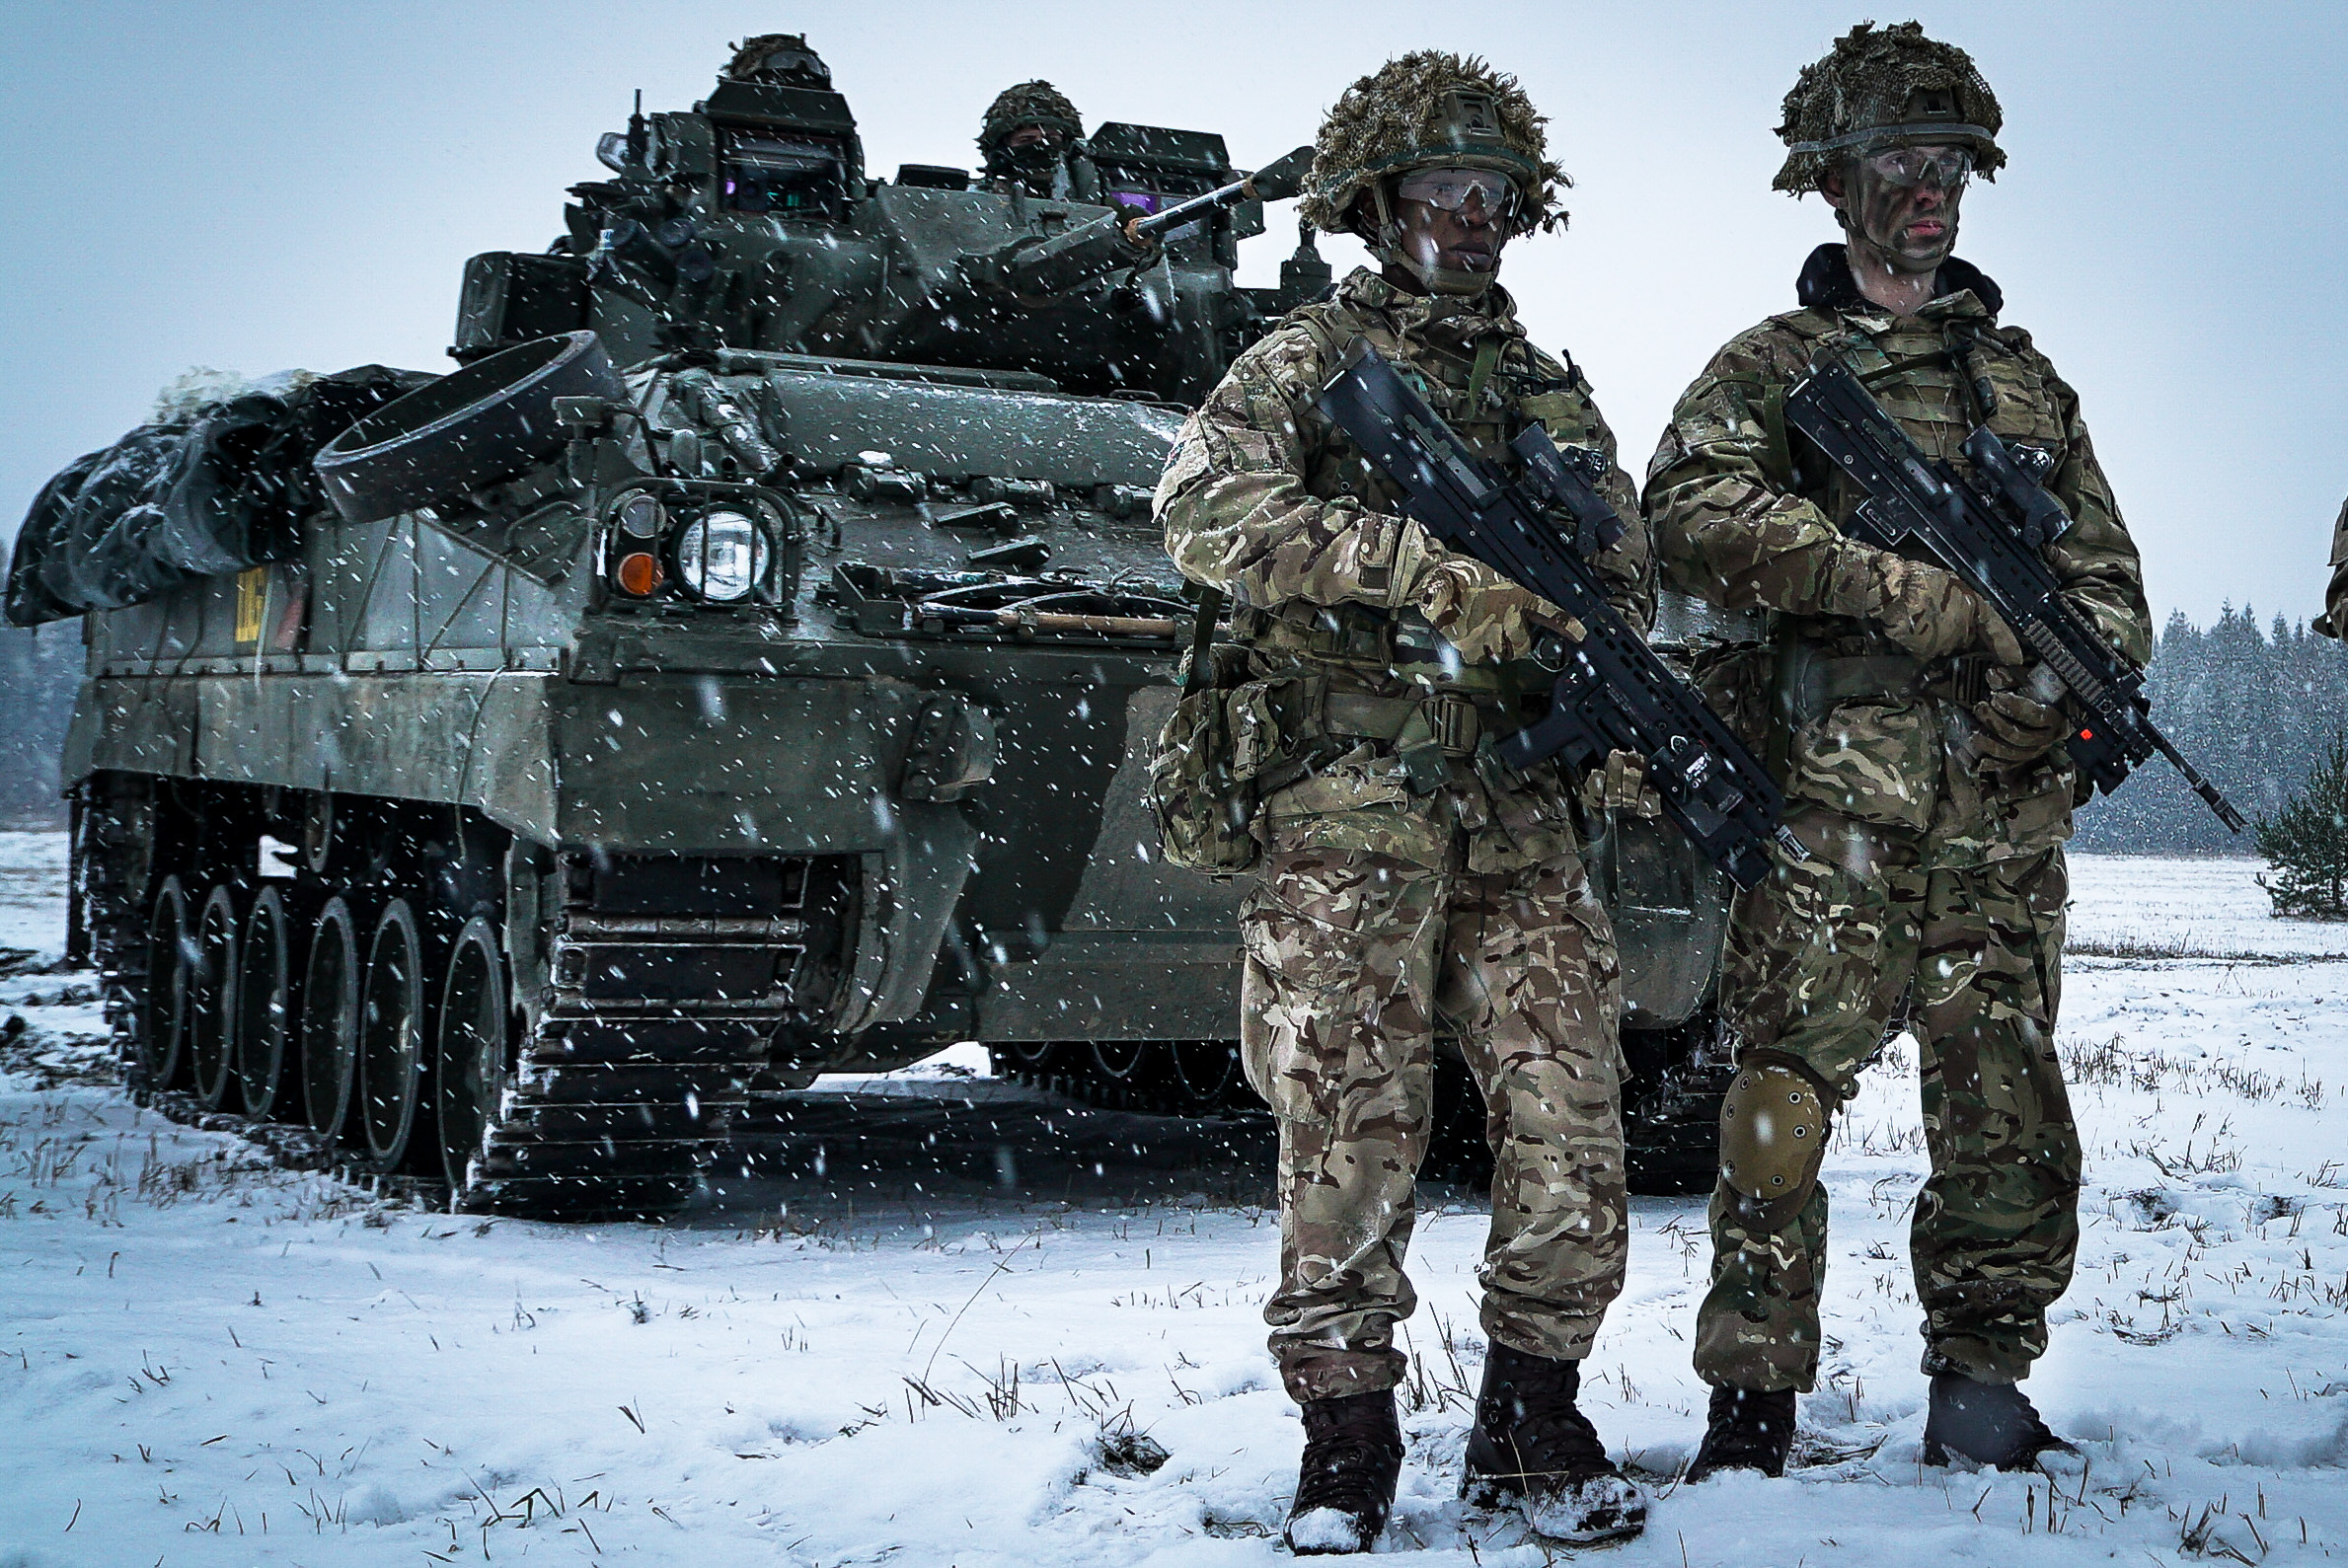 Soldiers from the British Army's Royal Welsh Regiment stand in front of their Warrior armoured fighting vehicle near a base in Tapa, Estonia. These troops form part of NATO's Enhanced Forward Presence in the East of the Alliance.